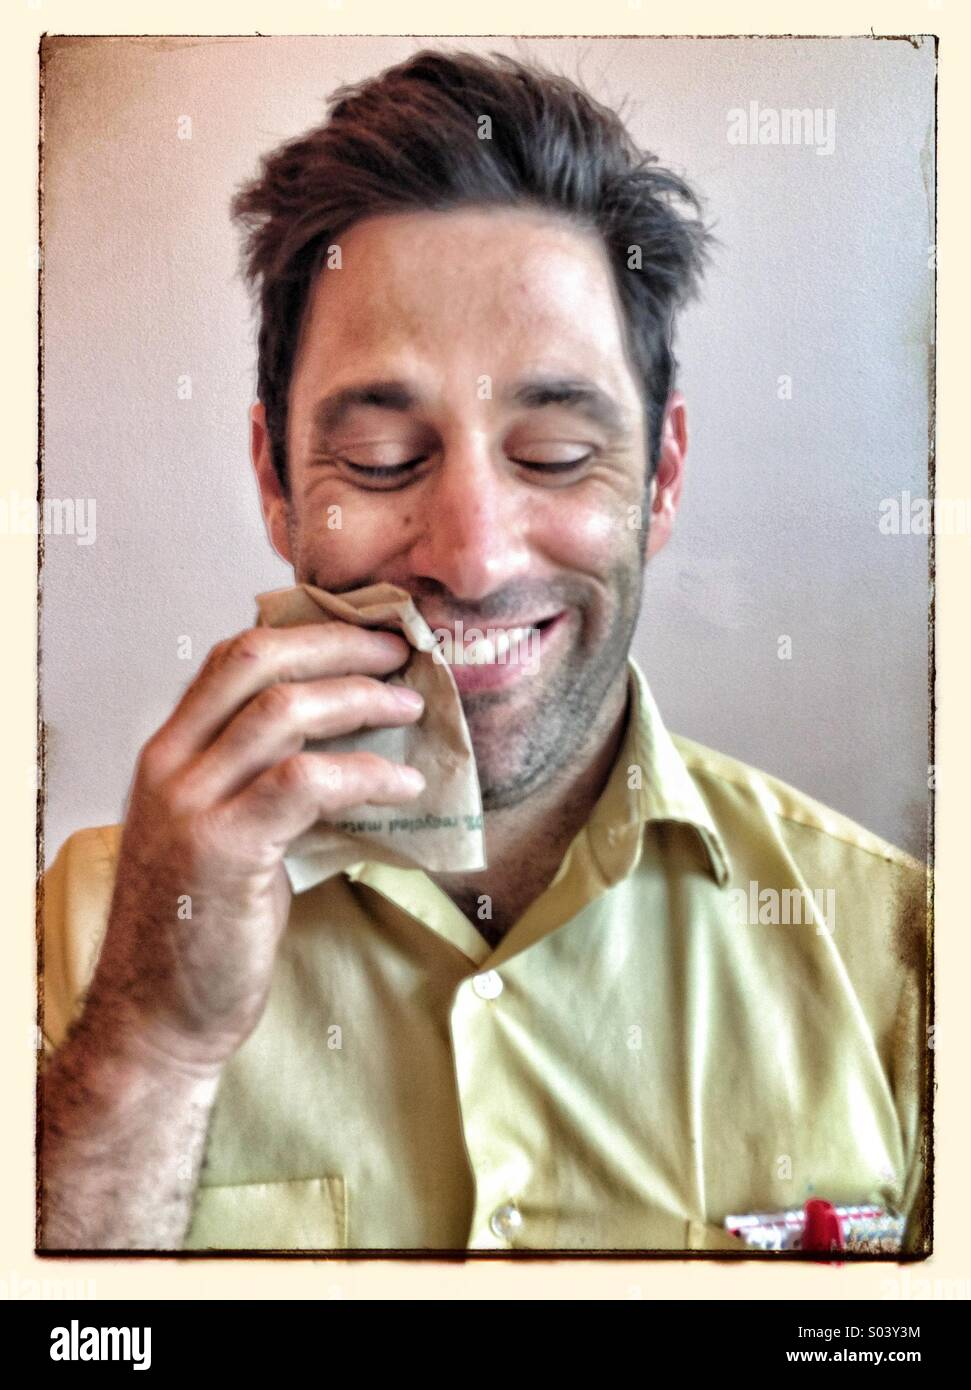 Satisfied guy after eating - Stock Image